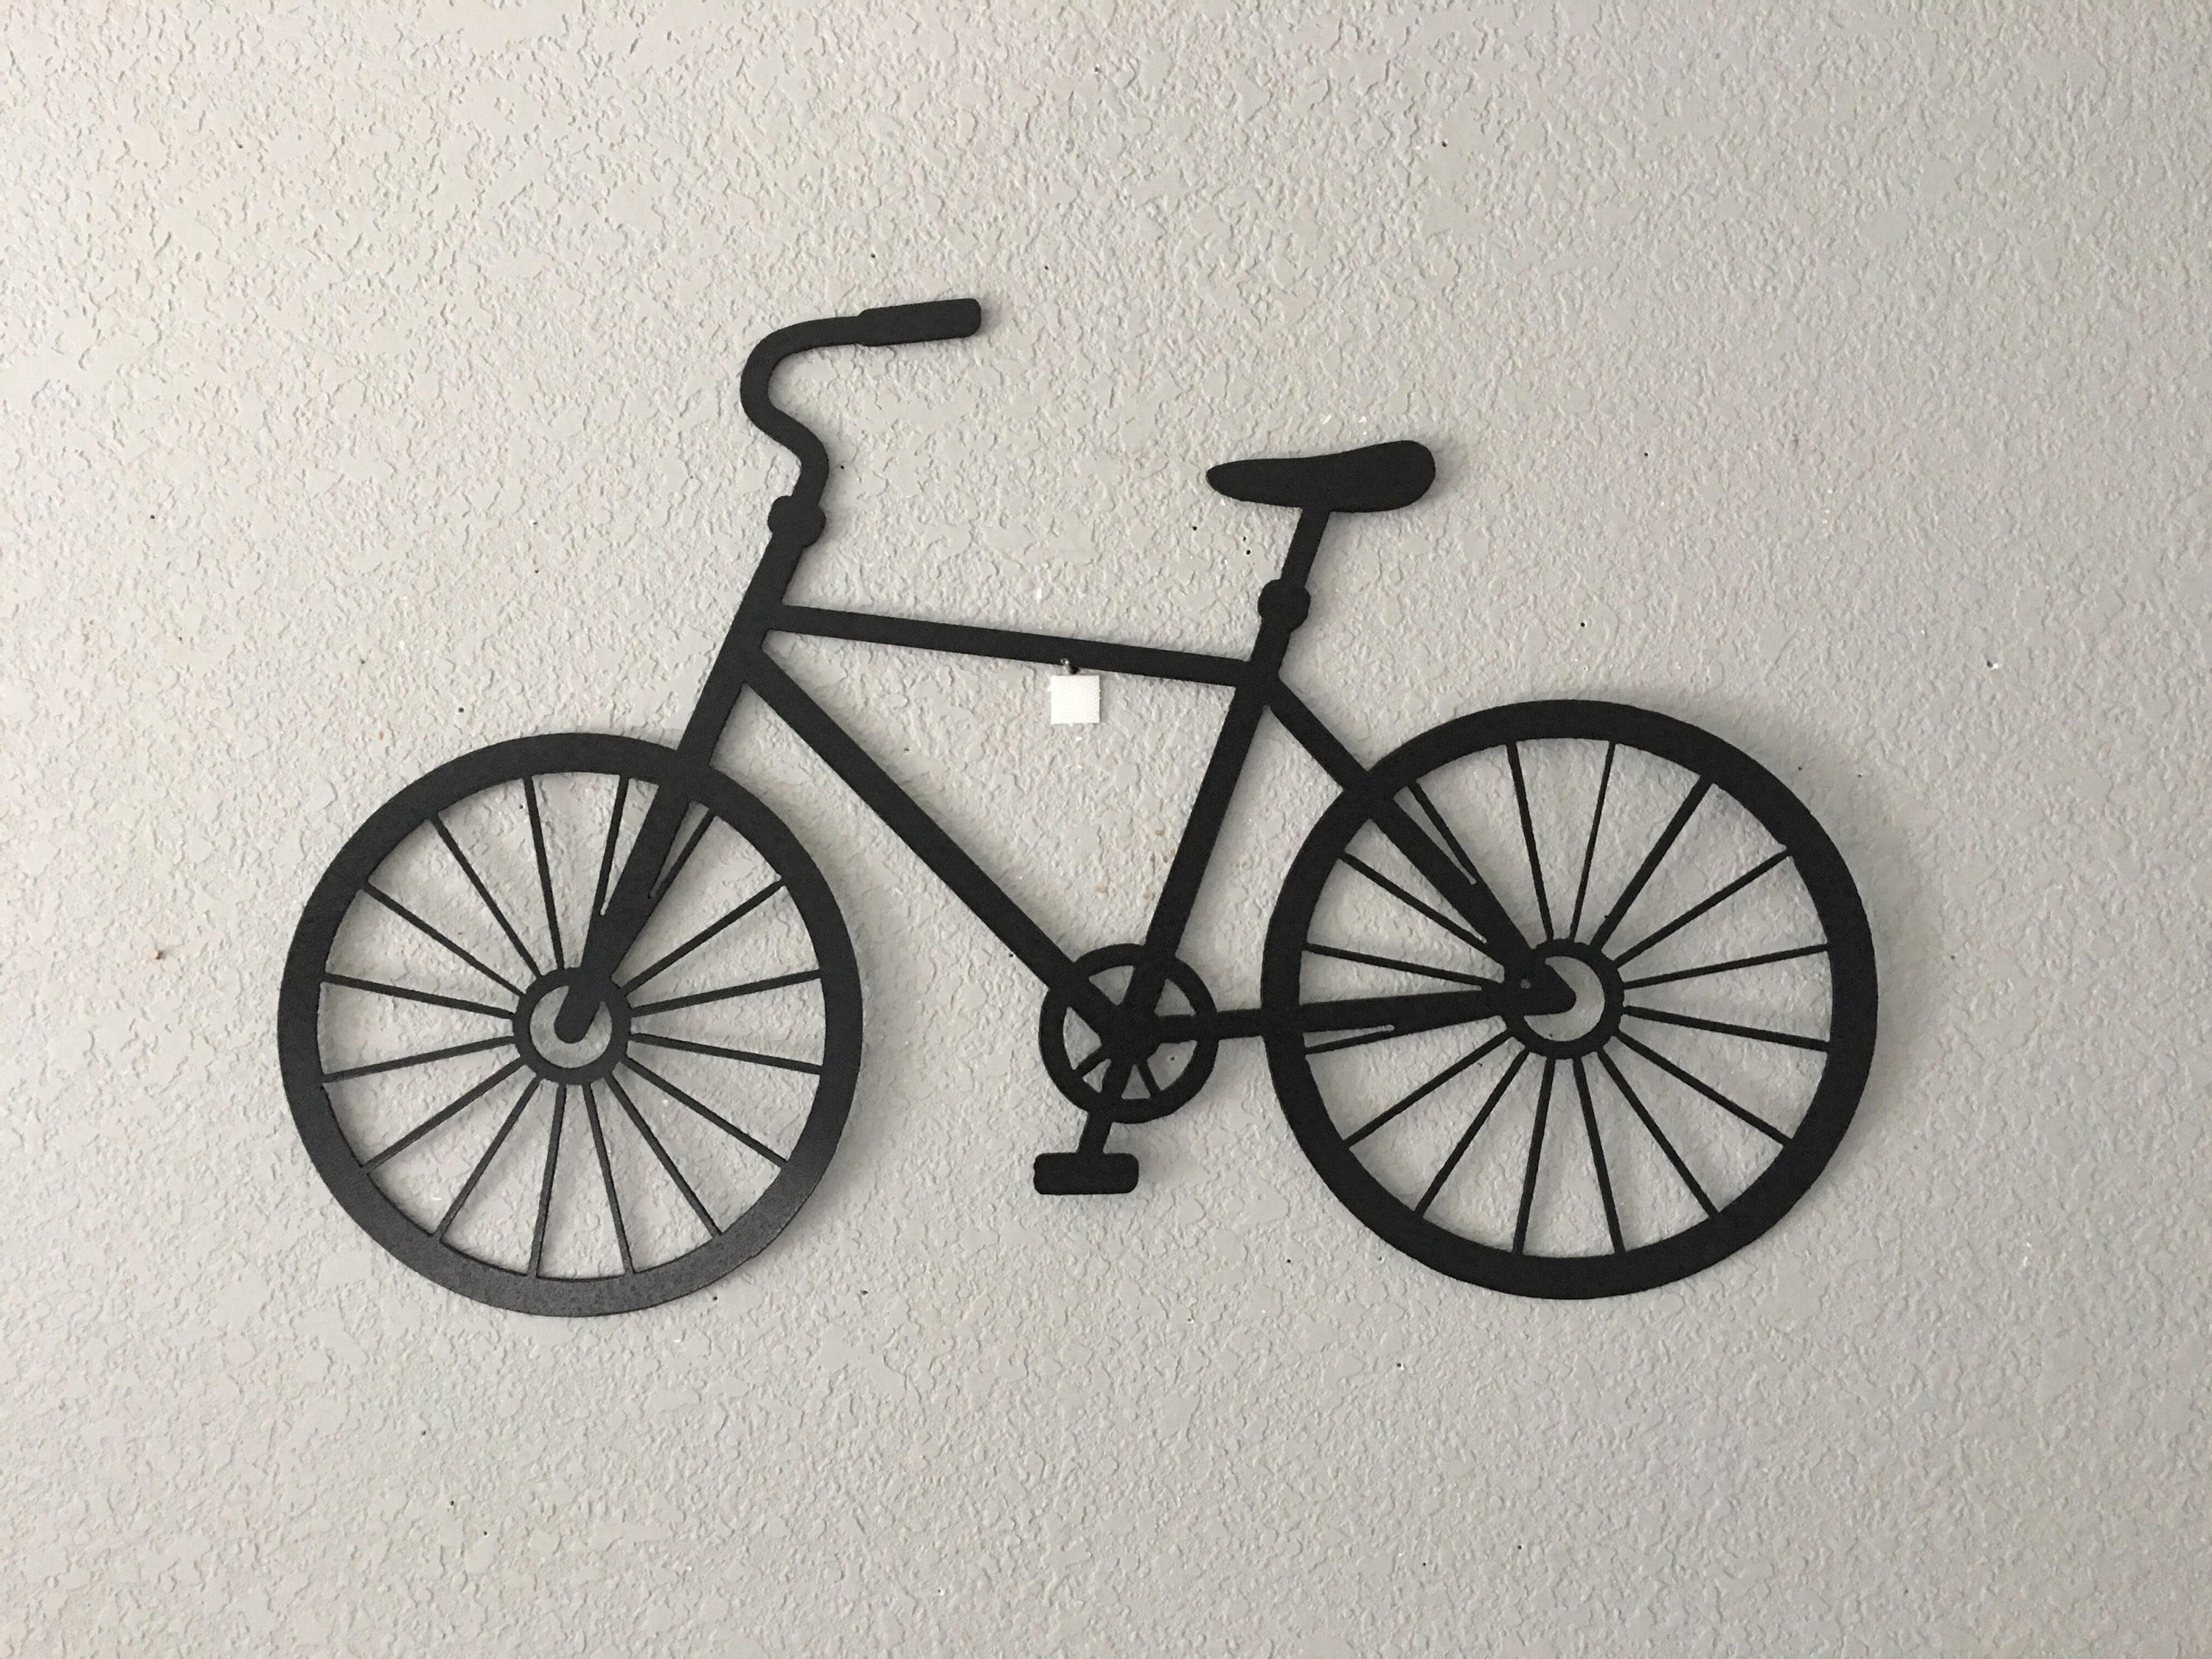 Bicycle – Bike – Wall Hanging Art – Metal Bicycles Intended For Preferred Bike Wall Art (View 8 of 15)